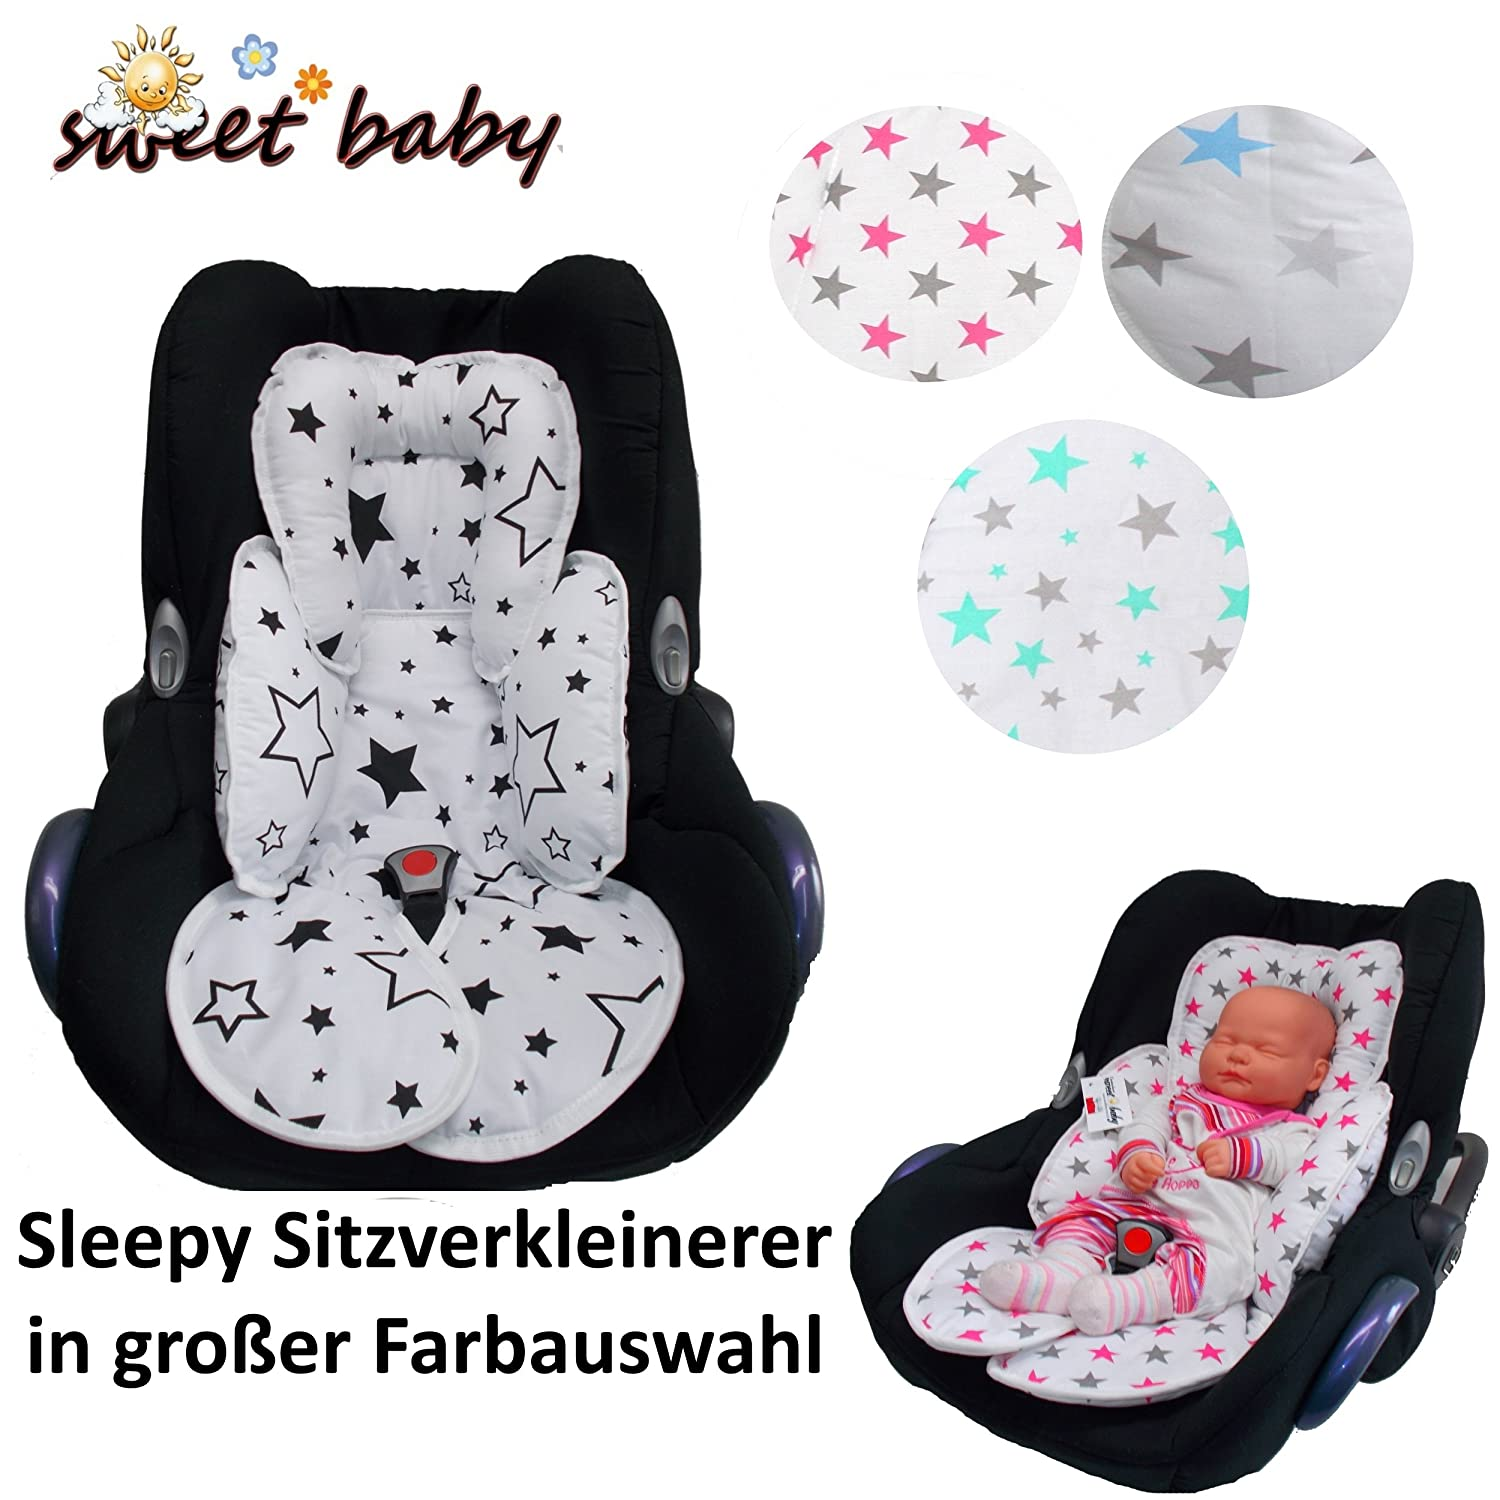 Sweet Baby * * Sleepy Car Seat Reducer/Newborn Antial Lergikum * * Suitable for Baby Size 0/0 + and 1 * * Perfect for Maxi COSI/Cybex etc. as Well as Pram, Cot, etc.